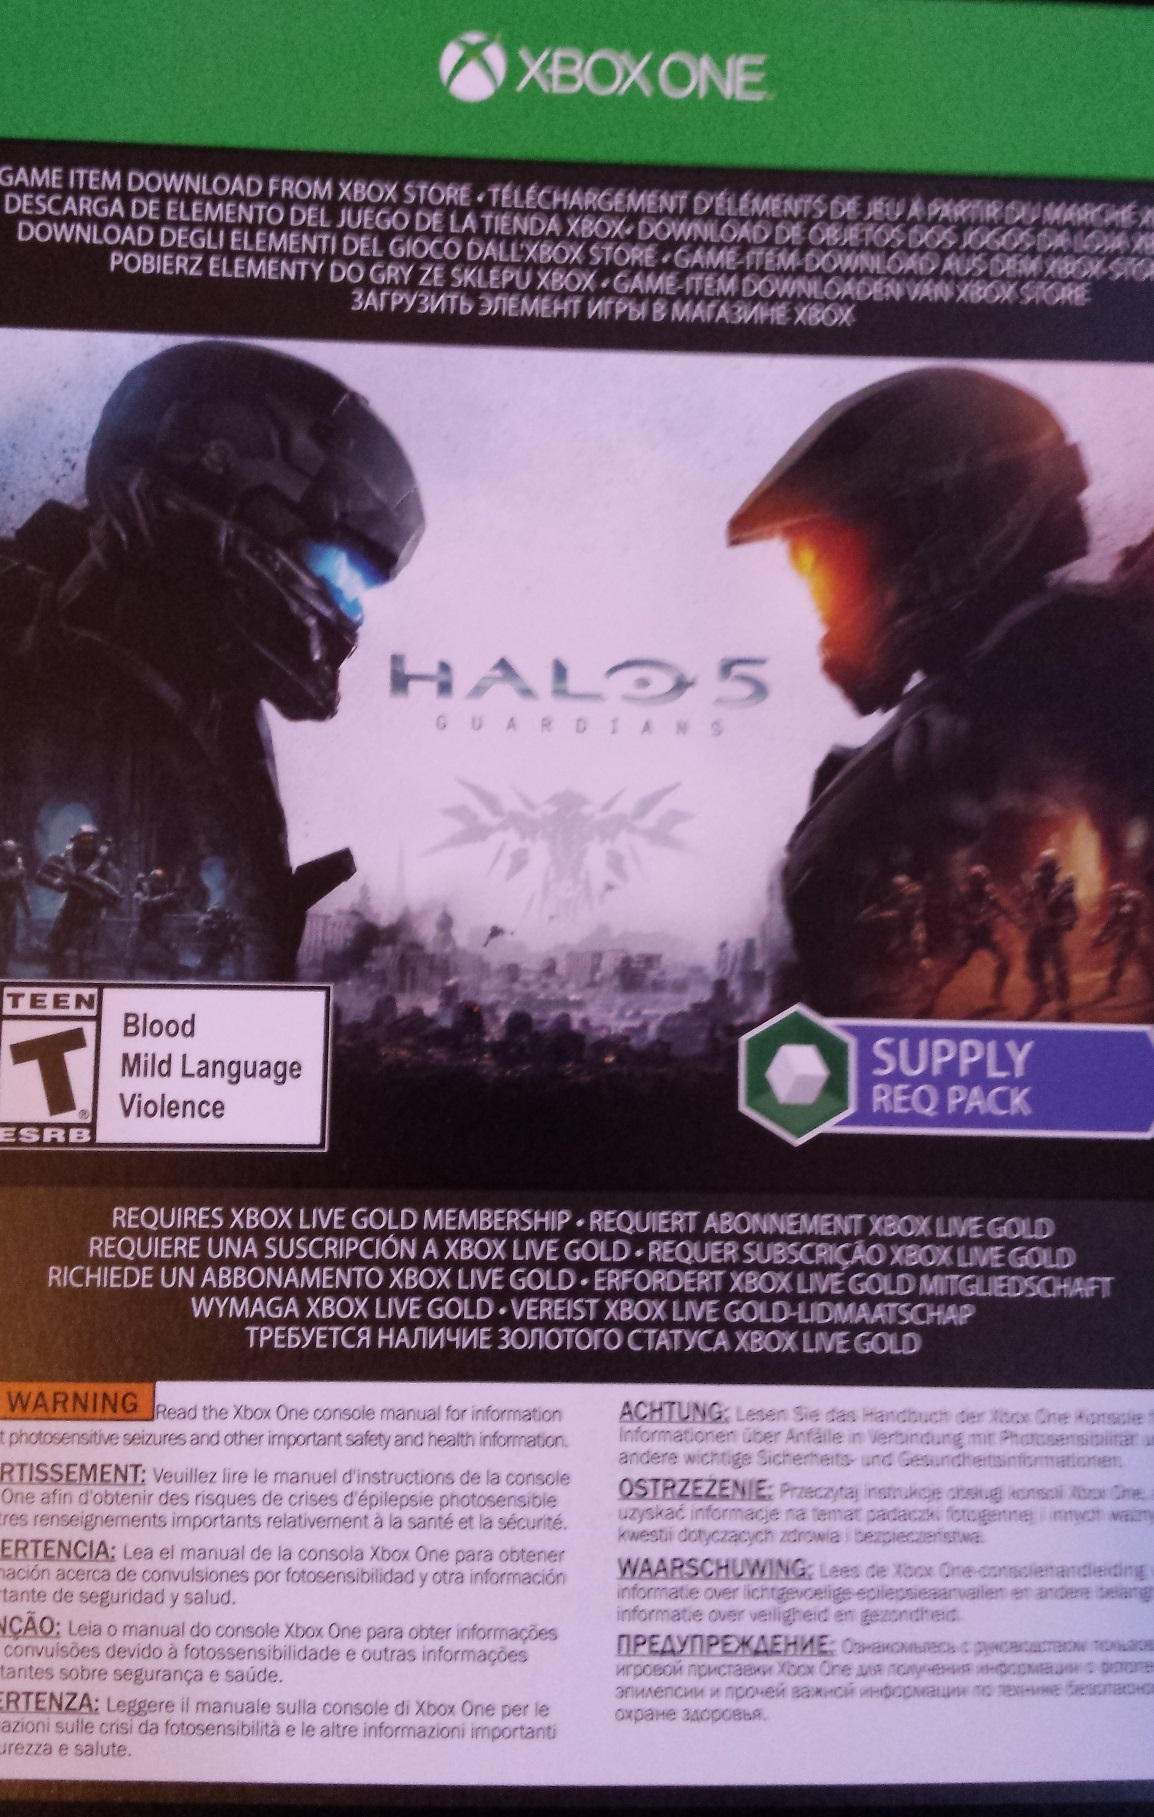 Halo dlc, loot crate, loot crate review, december loot crate, discovery loot crate